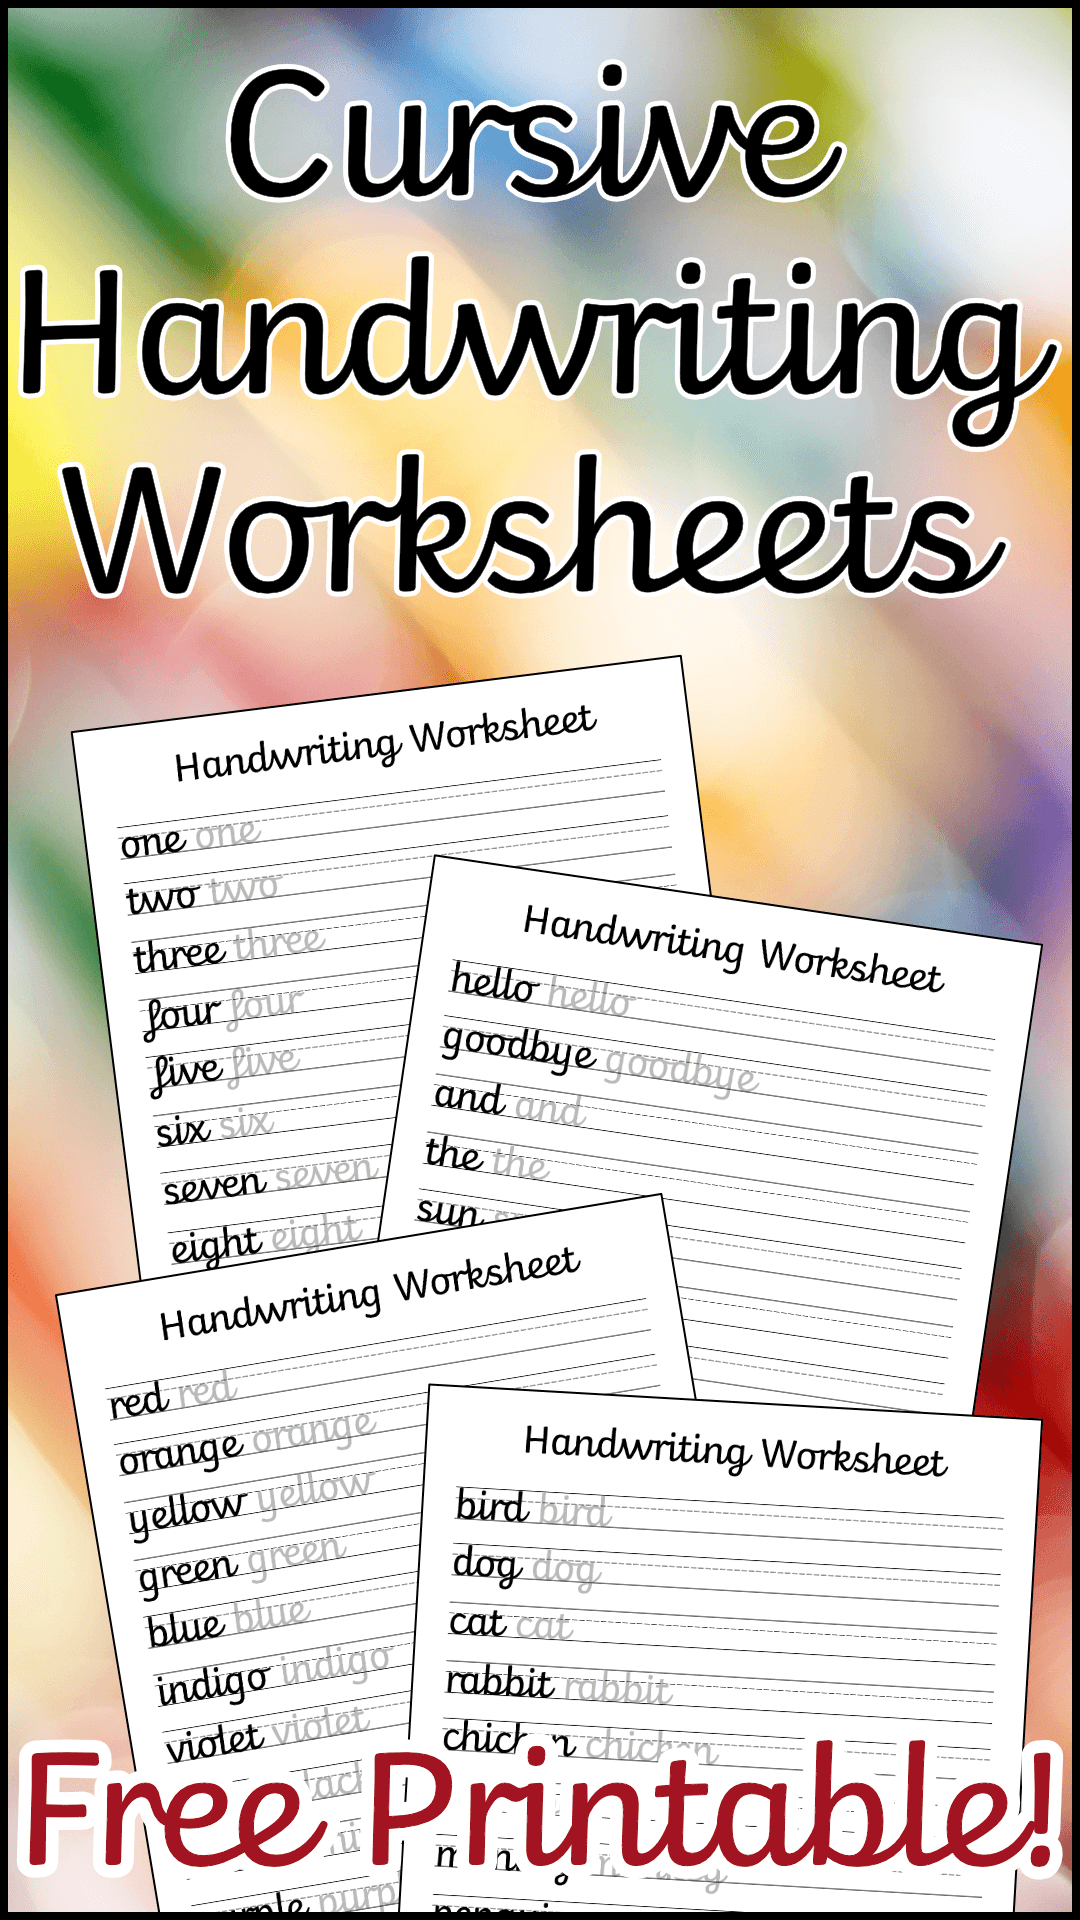 Cursive Handwriting Worksheets  U2013 Free Printable